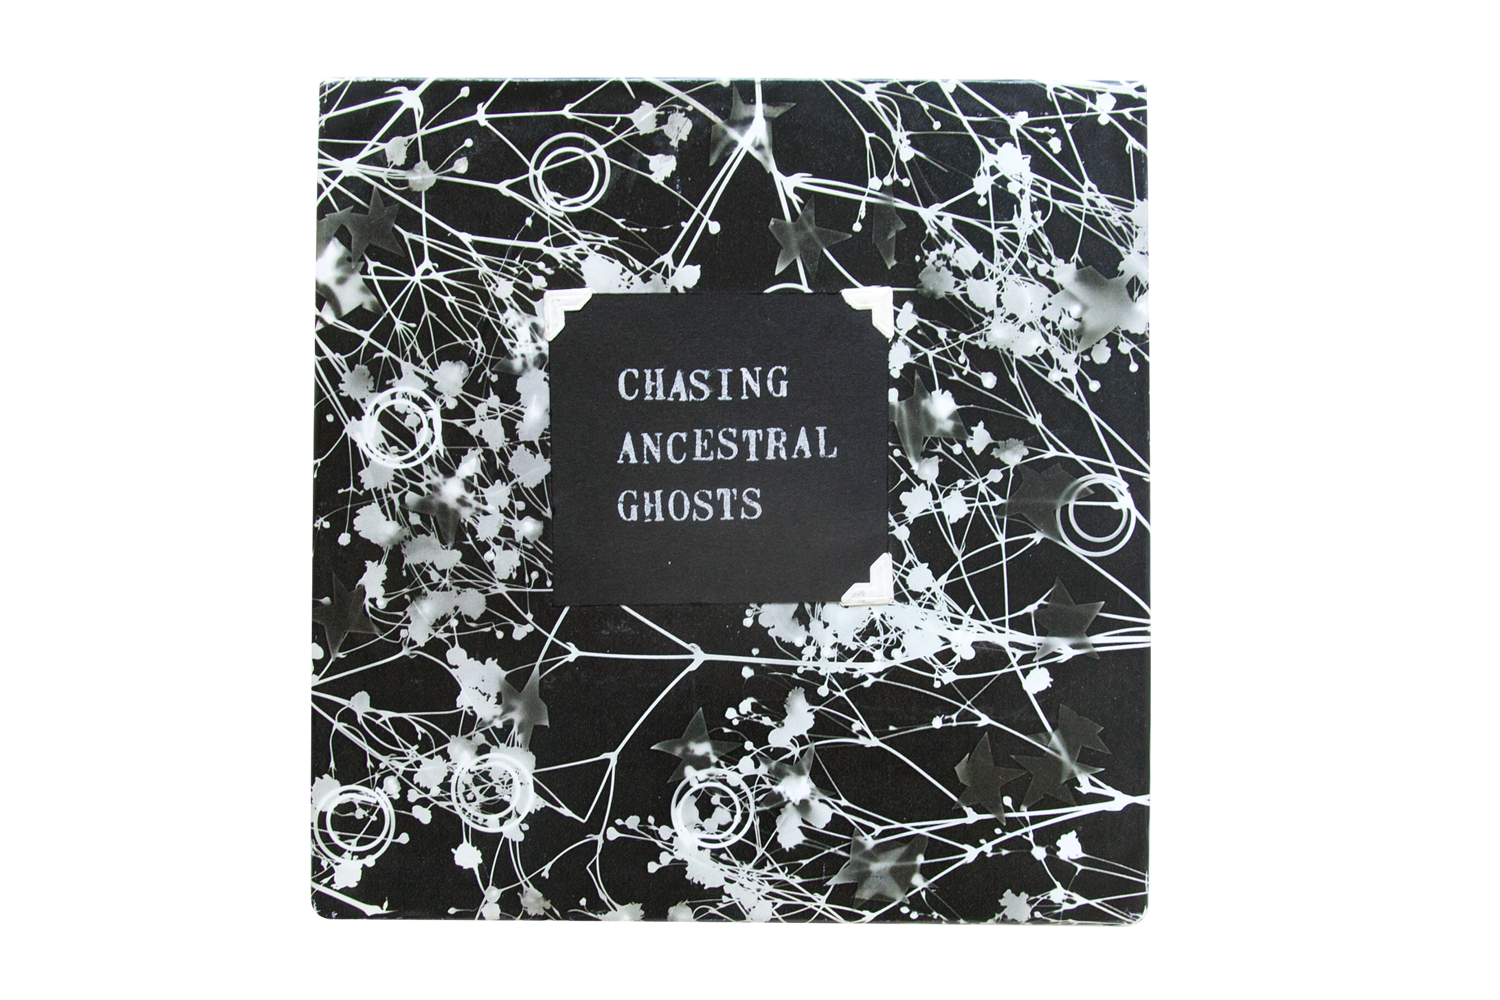 190_Chasing-Ancestral-Ghosts-cover-(2003)_-copy.png.png